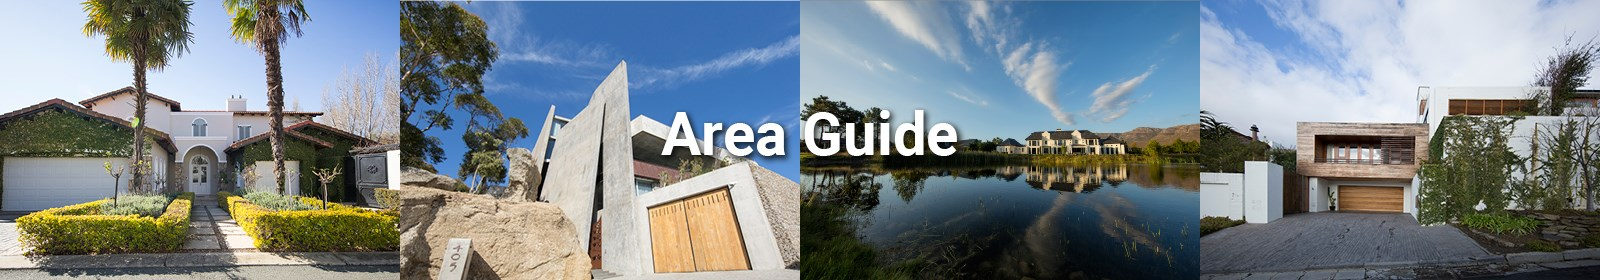 Holiday guide to False Bay & Southern Suburbs